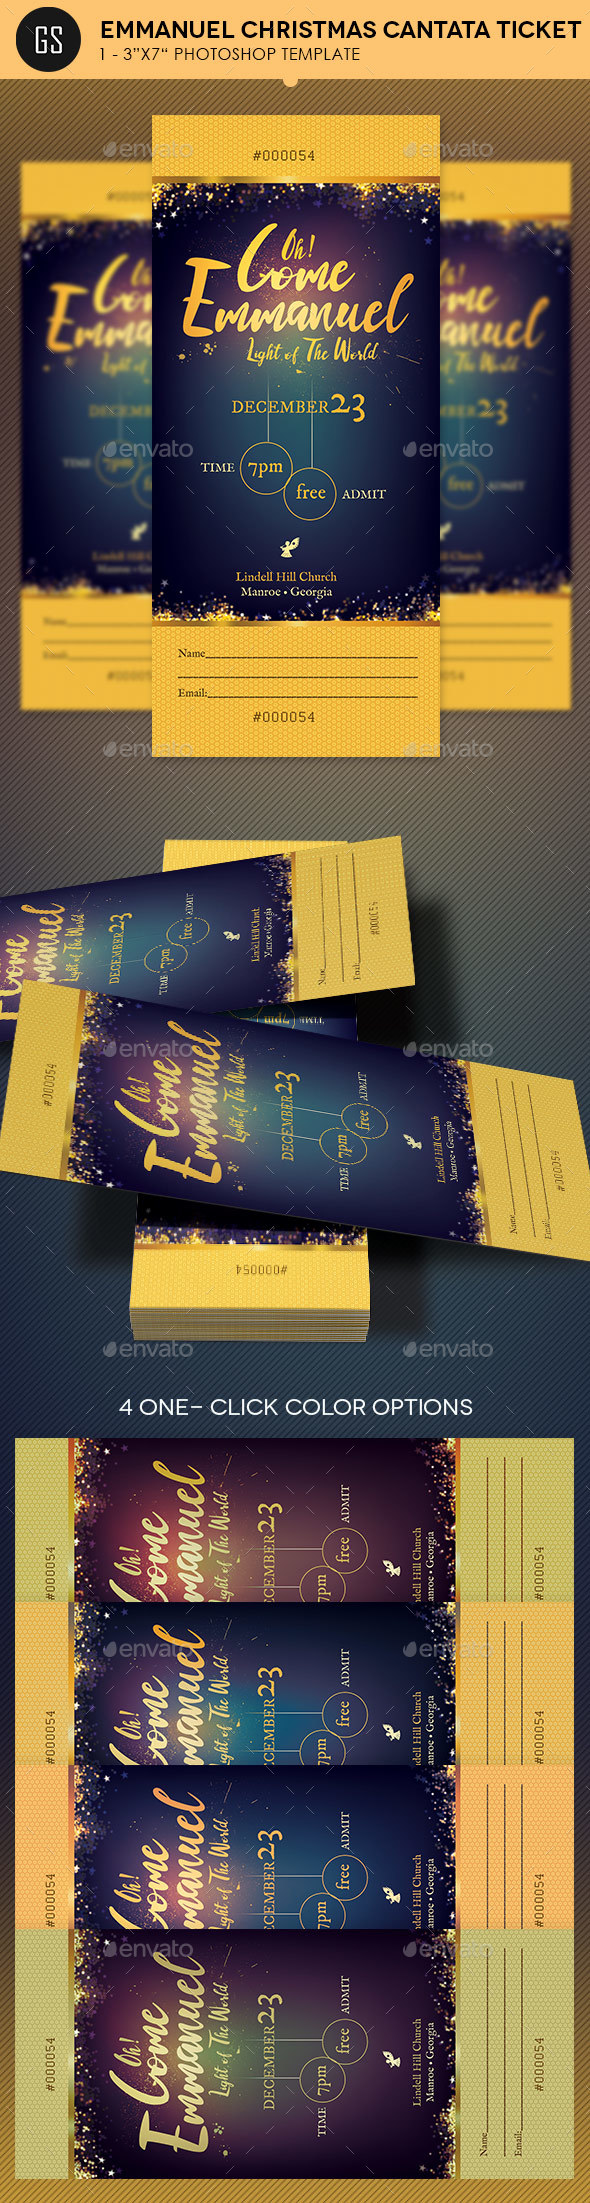 Emmanuel Christmas Cantata Ticket Template - Miscellaneous Print Templates